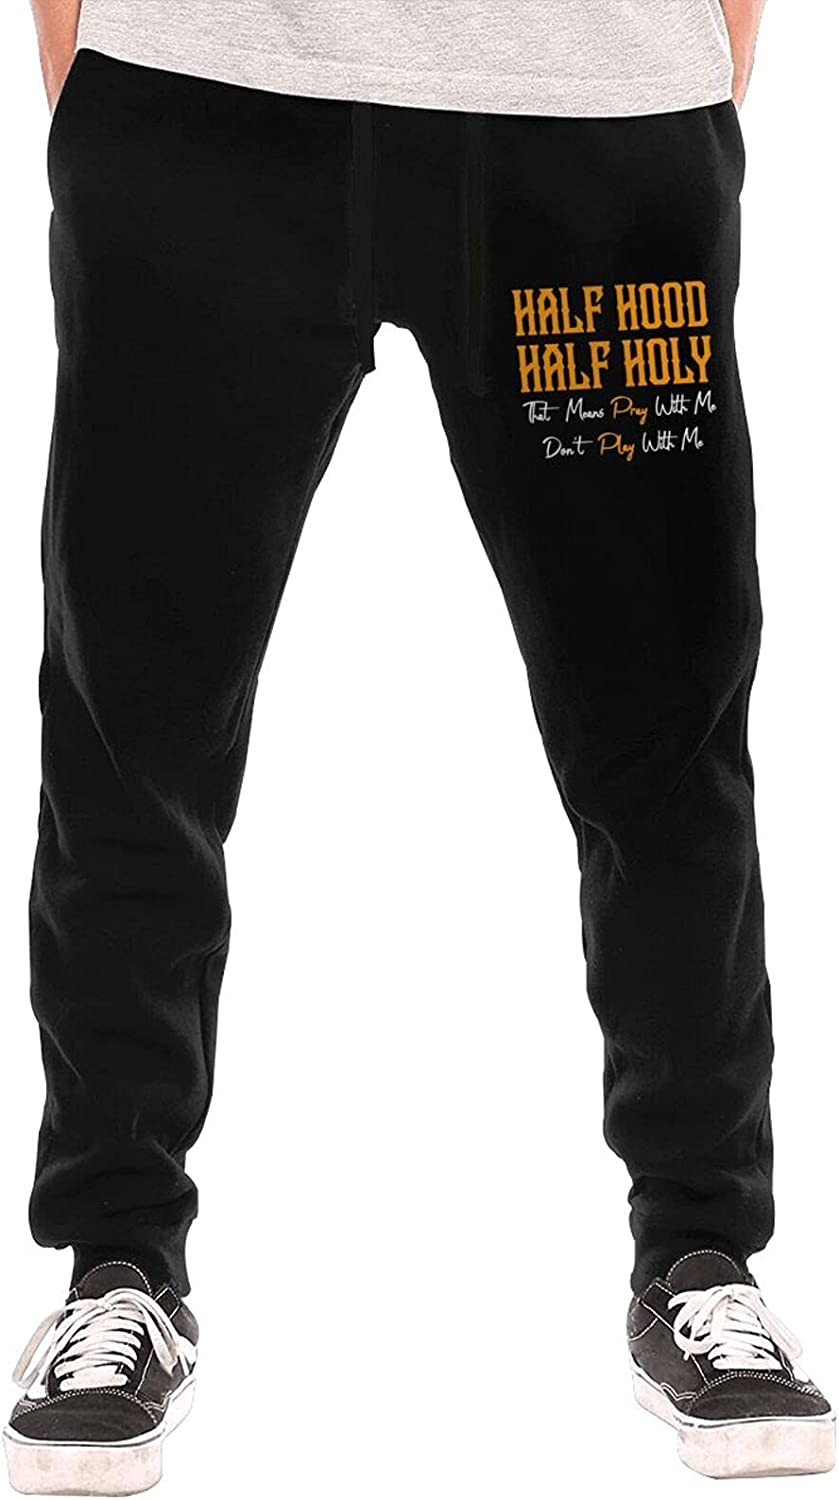 Constantyou Half In a popularity Hood Some reservation Holy Sweatpants Casual for Mans Pants